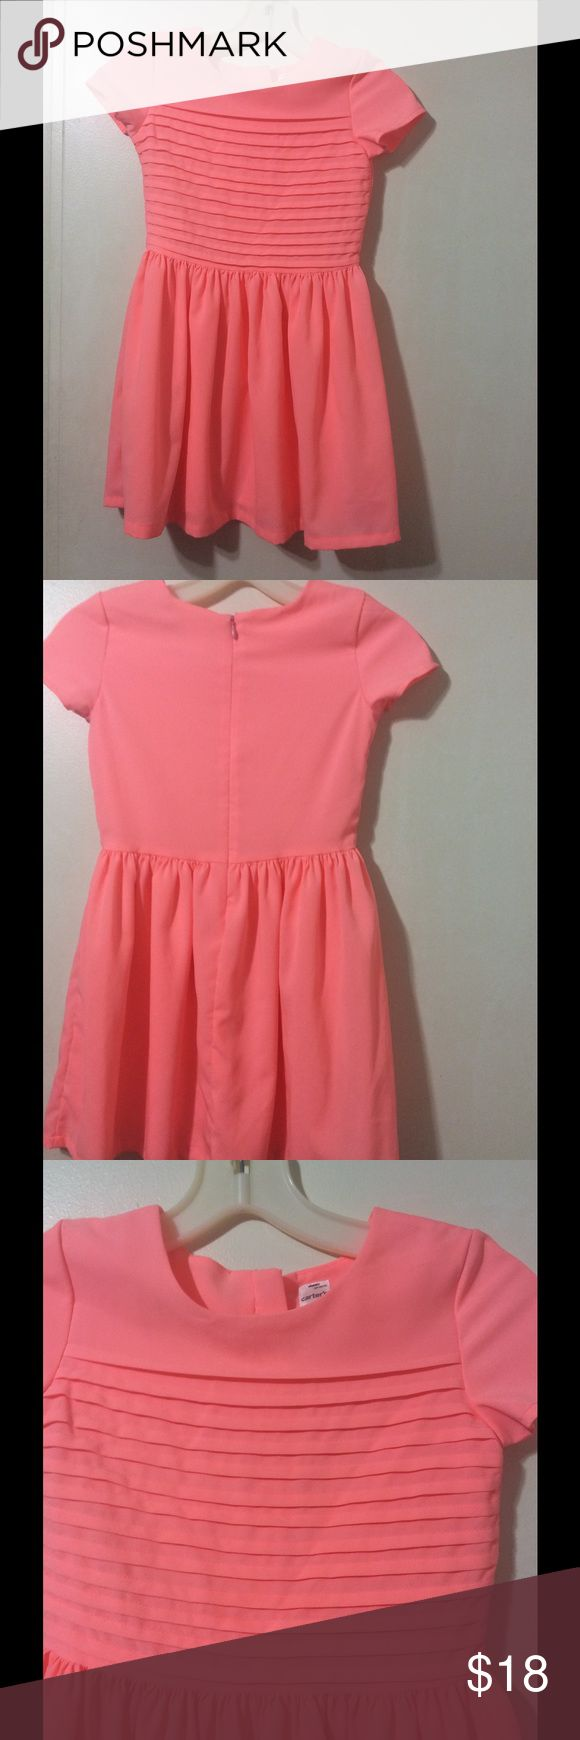 Little girl's neon coral, pleated bodice dress. Carter's size 6 neon coral, pleated bodice dress for the little princess on your life! It's 100% polyester lined dressy dress. Carter's Dresses